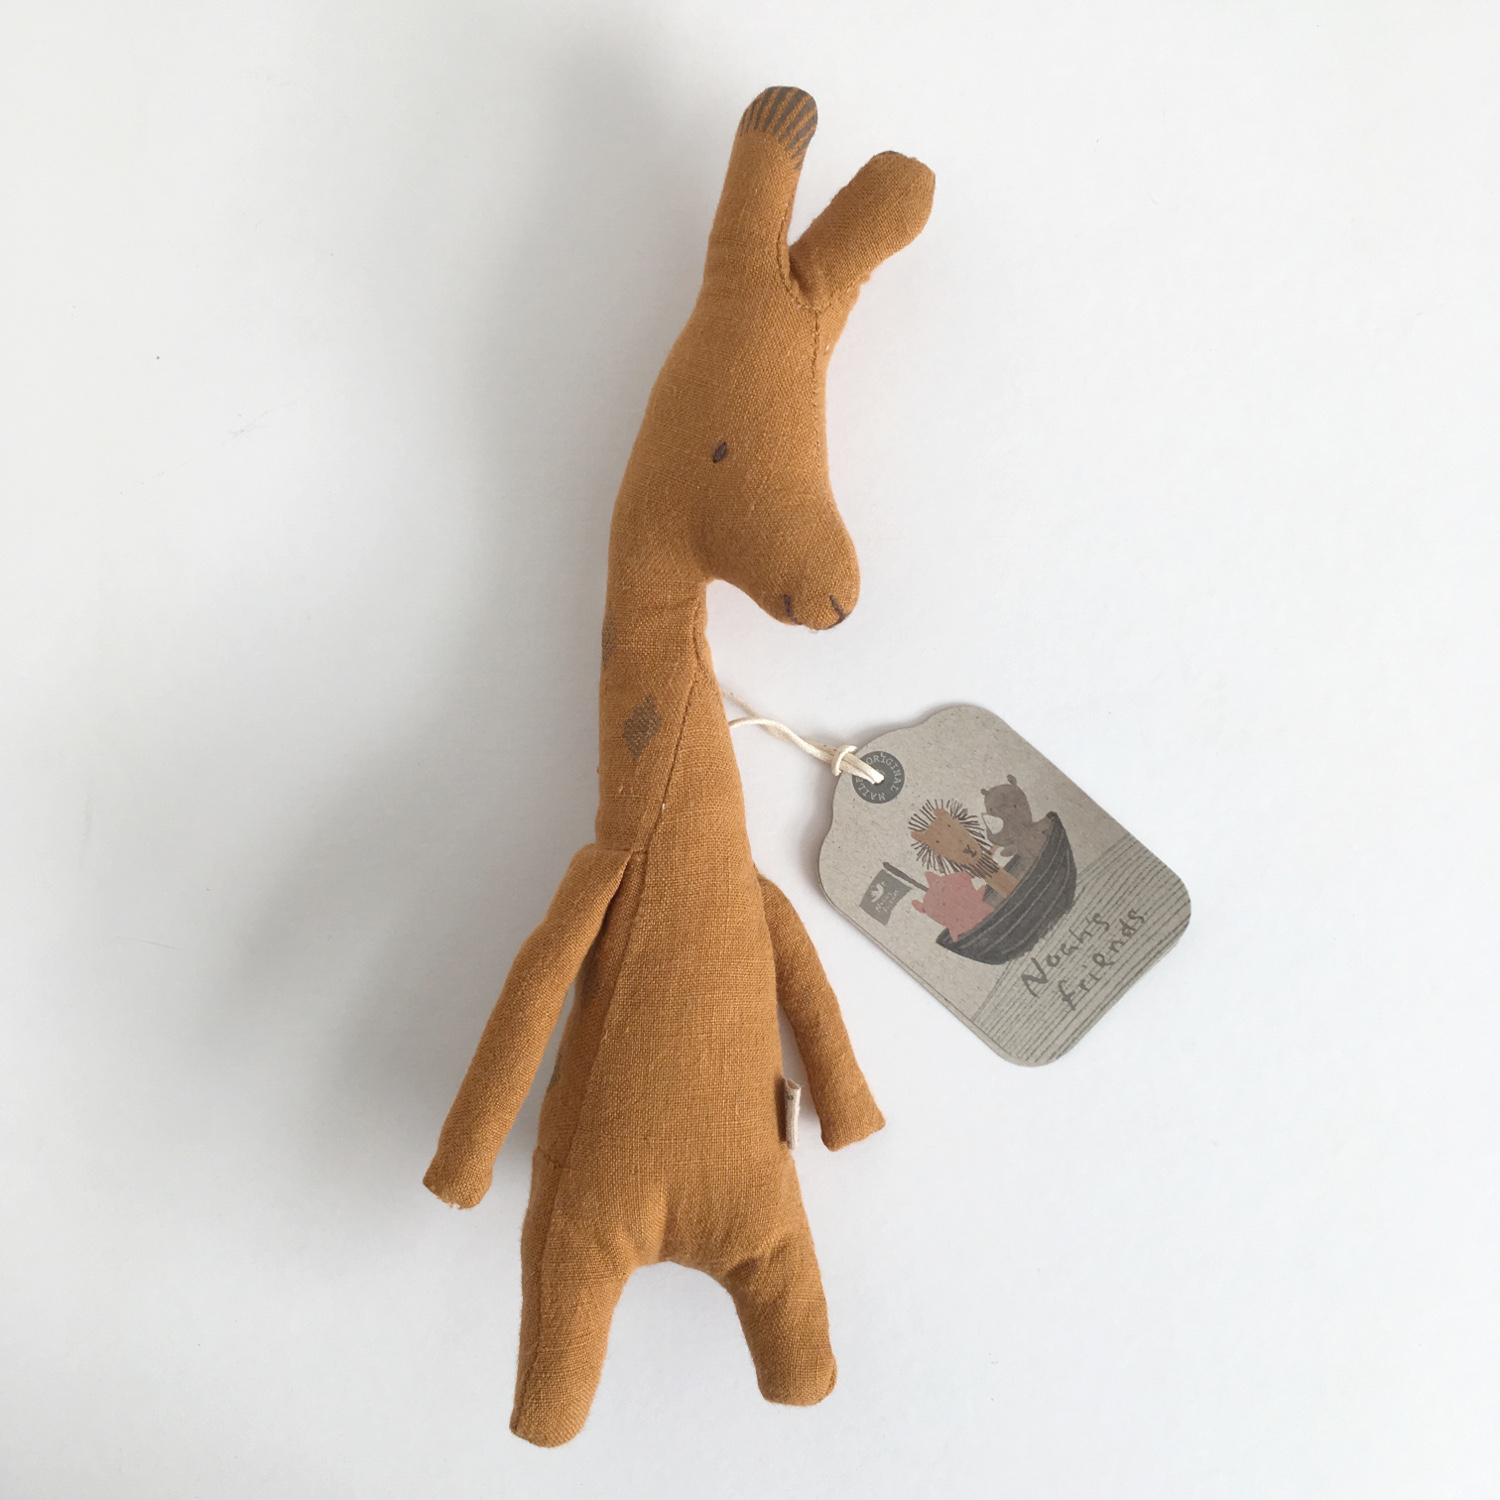 Mini giraffe from Maileg